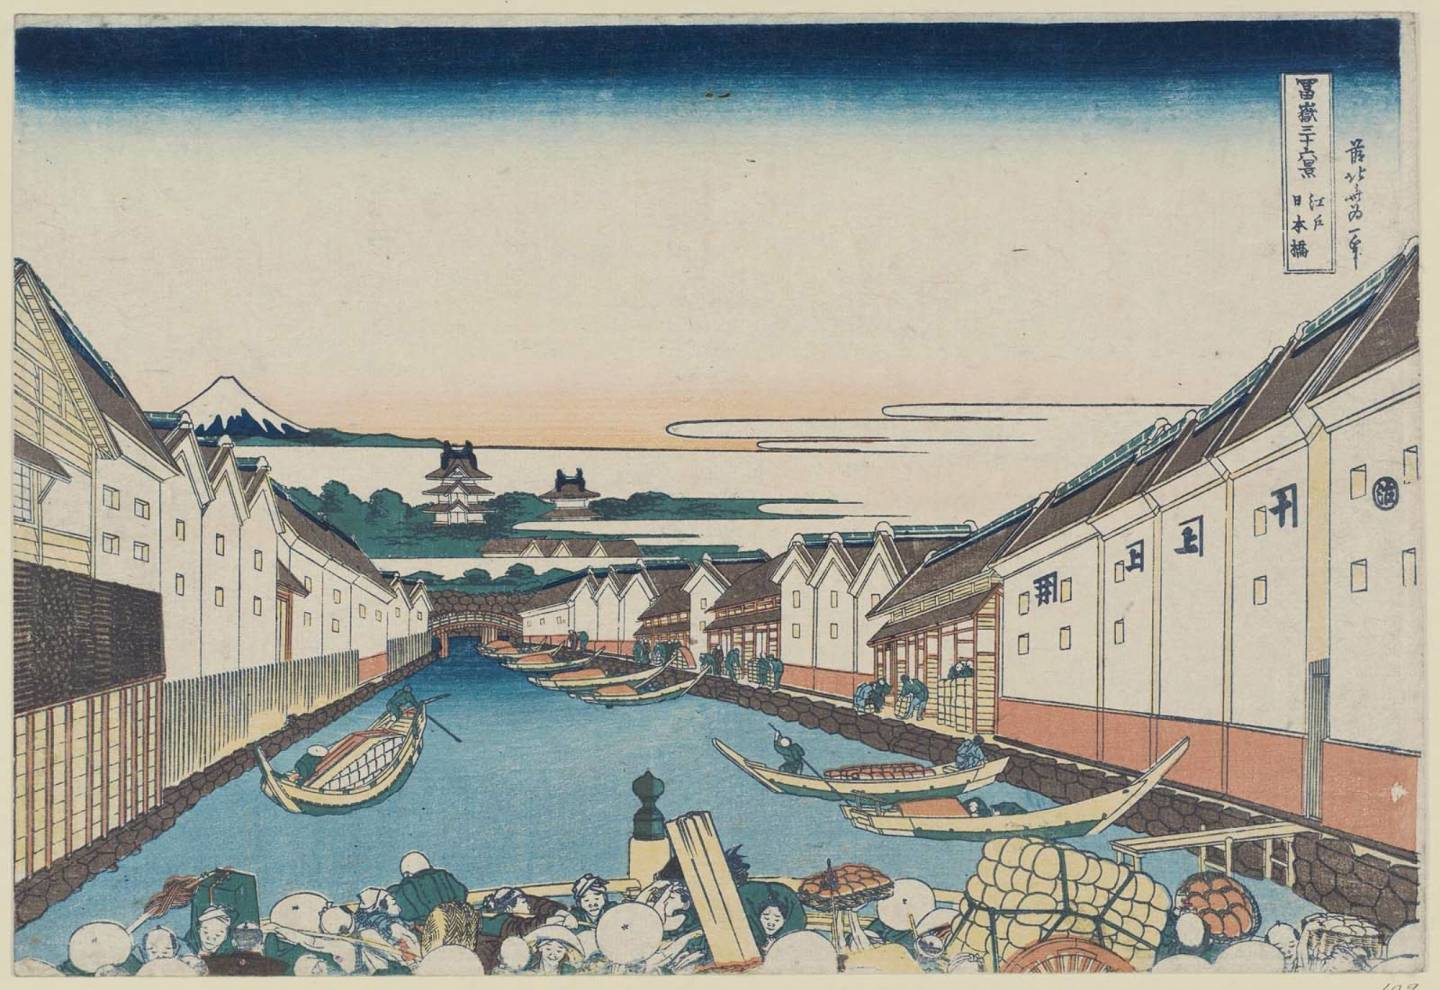 Lindsay | Drawing Japan with the Old Man Mad About Drawing | Katsushika Hokusai, Thirty-six Views of Mount Fuji: The Nihonbashi in Edo, c. 1830—1834